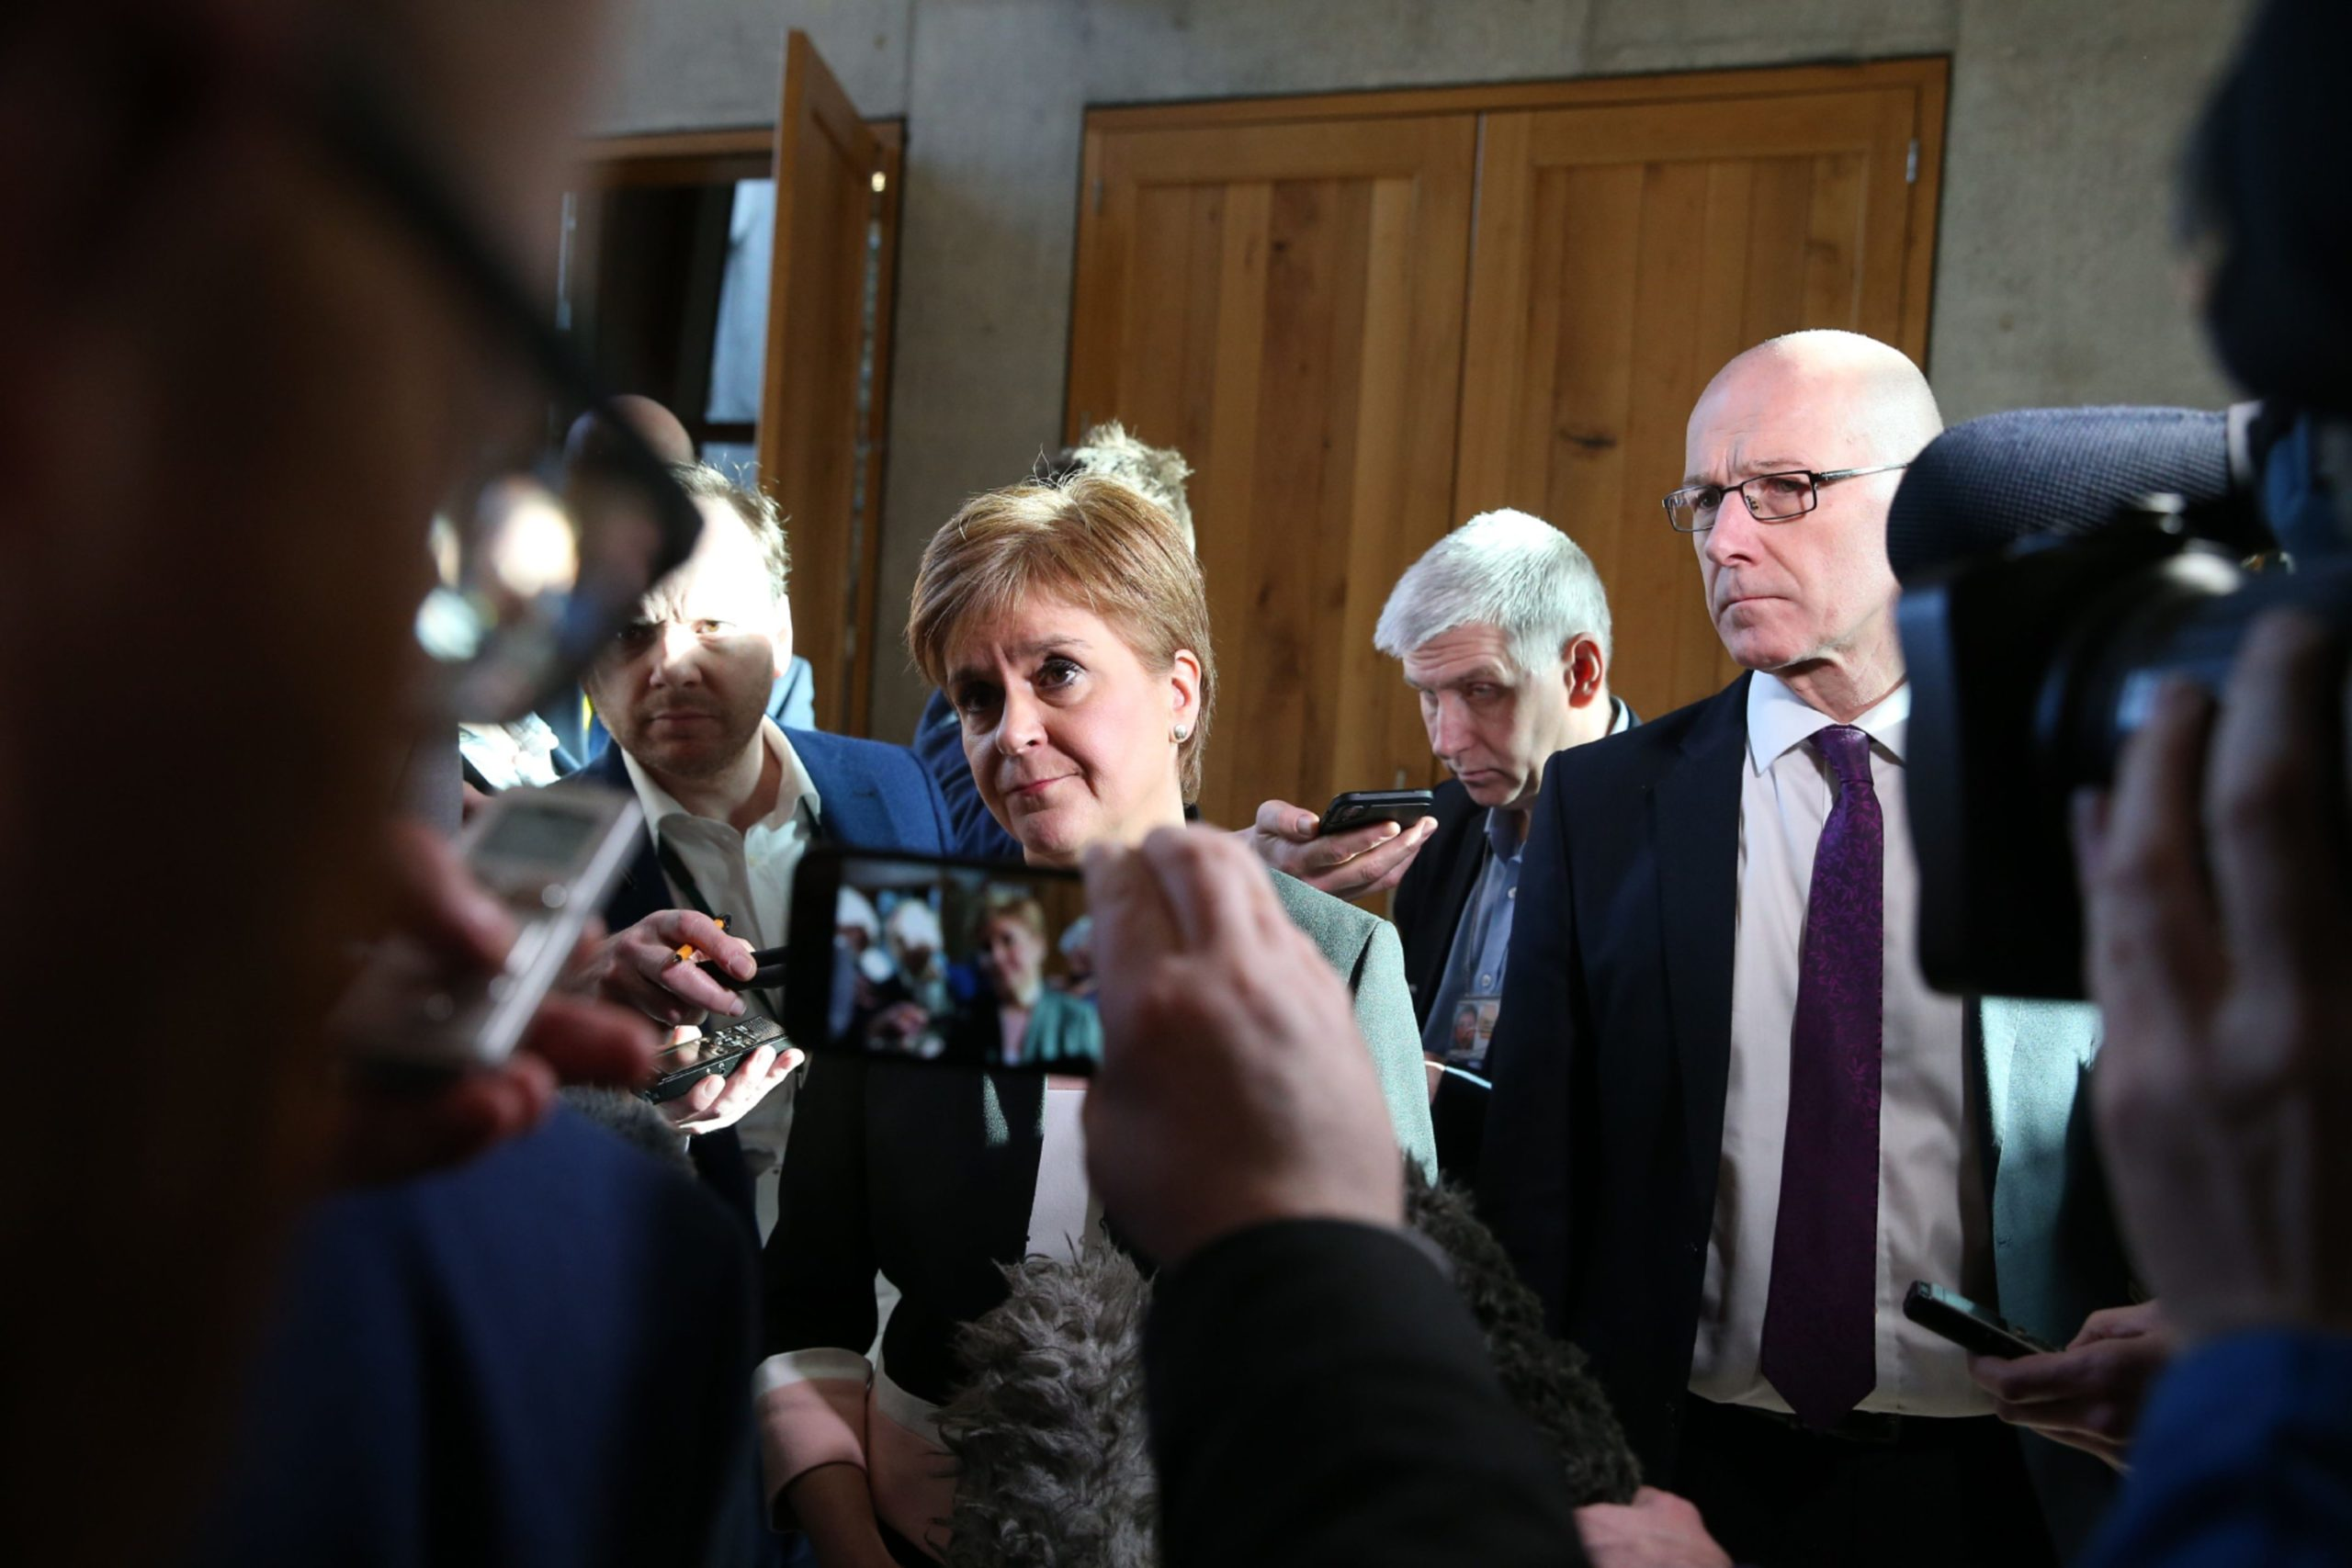 Nicola Sturgeon addresses the media after FMQs to answer questions on Derek Mackay.